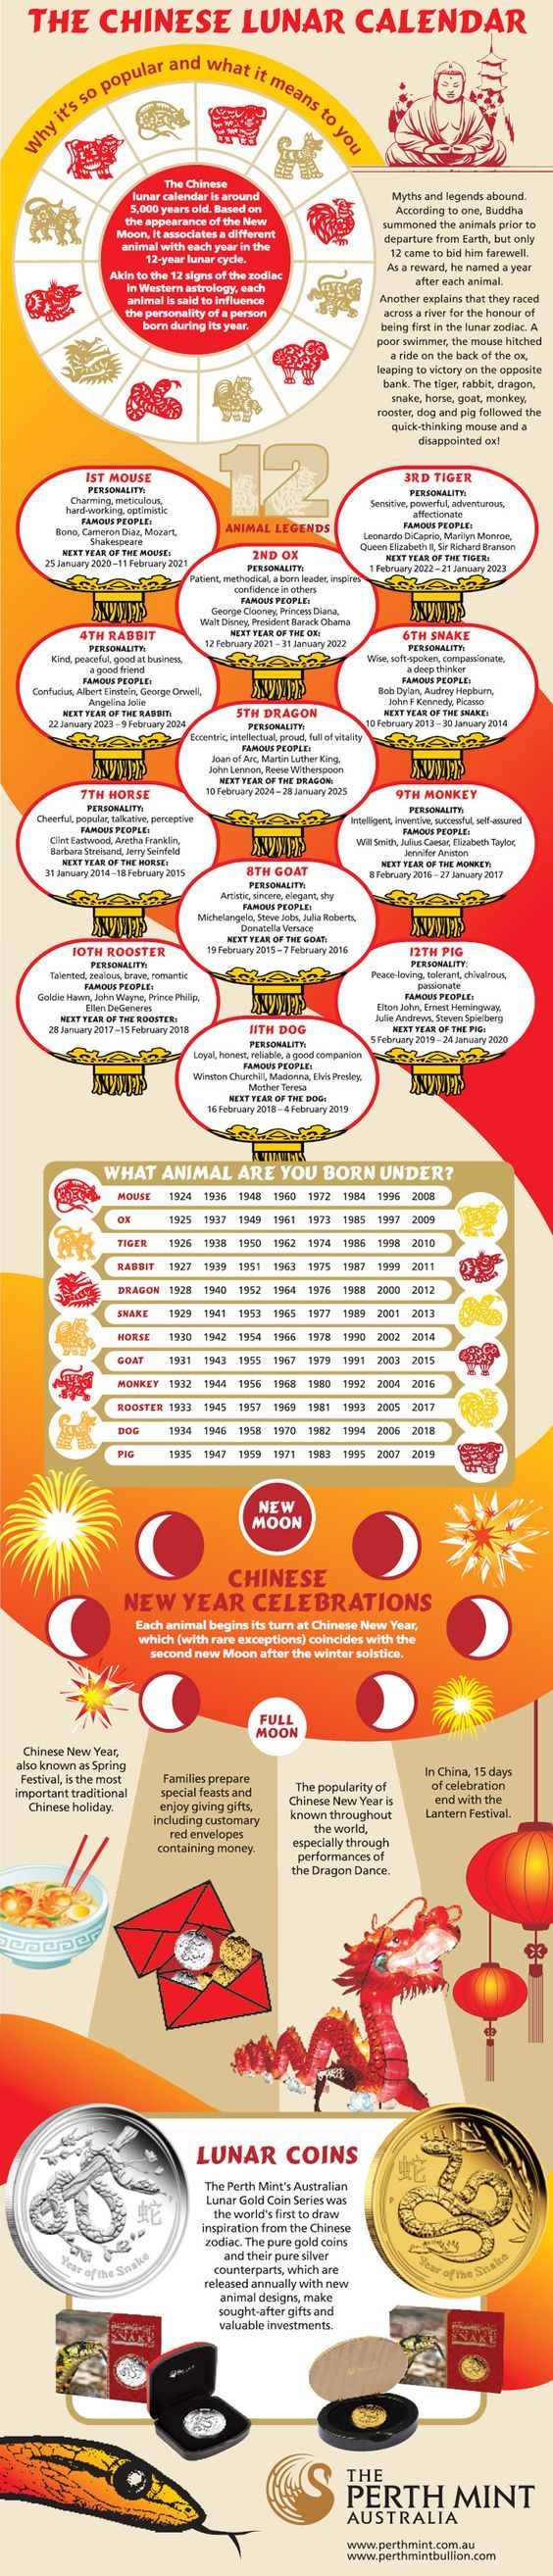 In the spirit of the New Year, today's infographic takes a look into the celebration of the Chinese New Year and the Zodiac calendar. With the holiday season officially over, it's time to begin looking to the next months' festivities and celebrations: